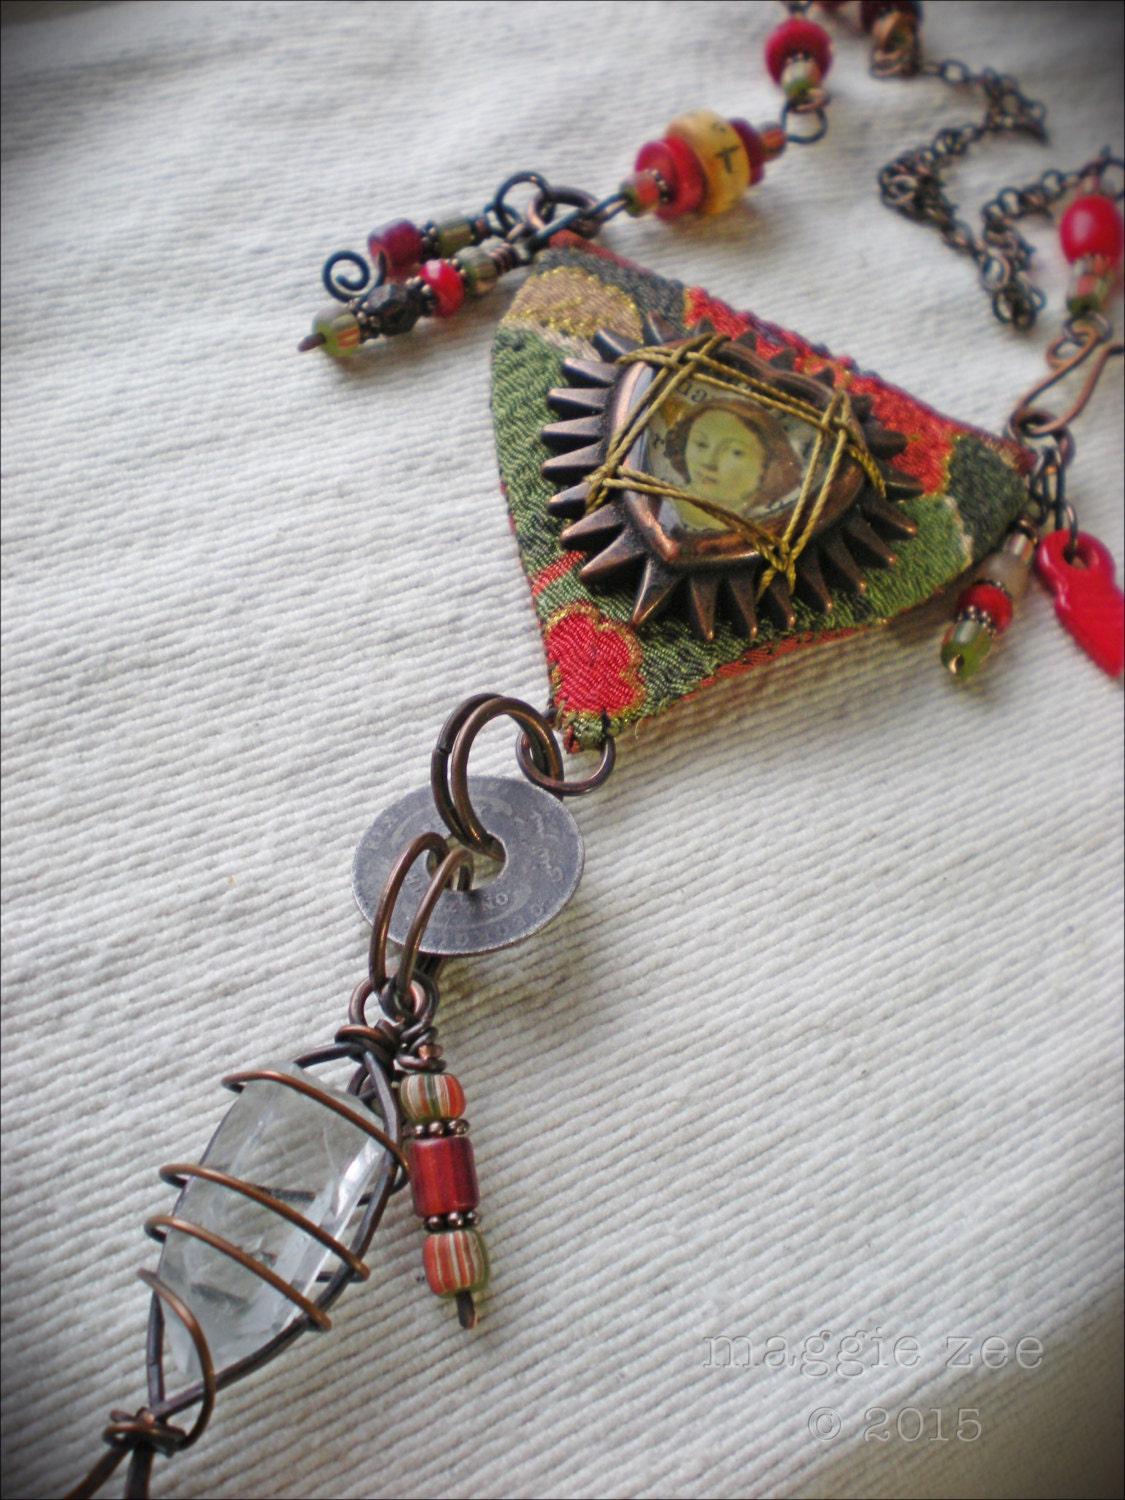 Amulet Jewelry Pendants Sothon: Binding Spell Protective Amulet Necklace